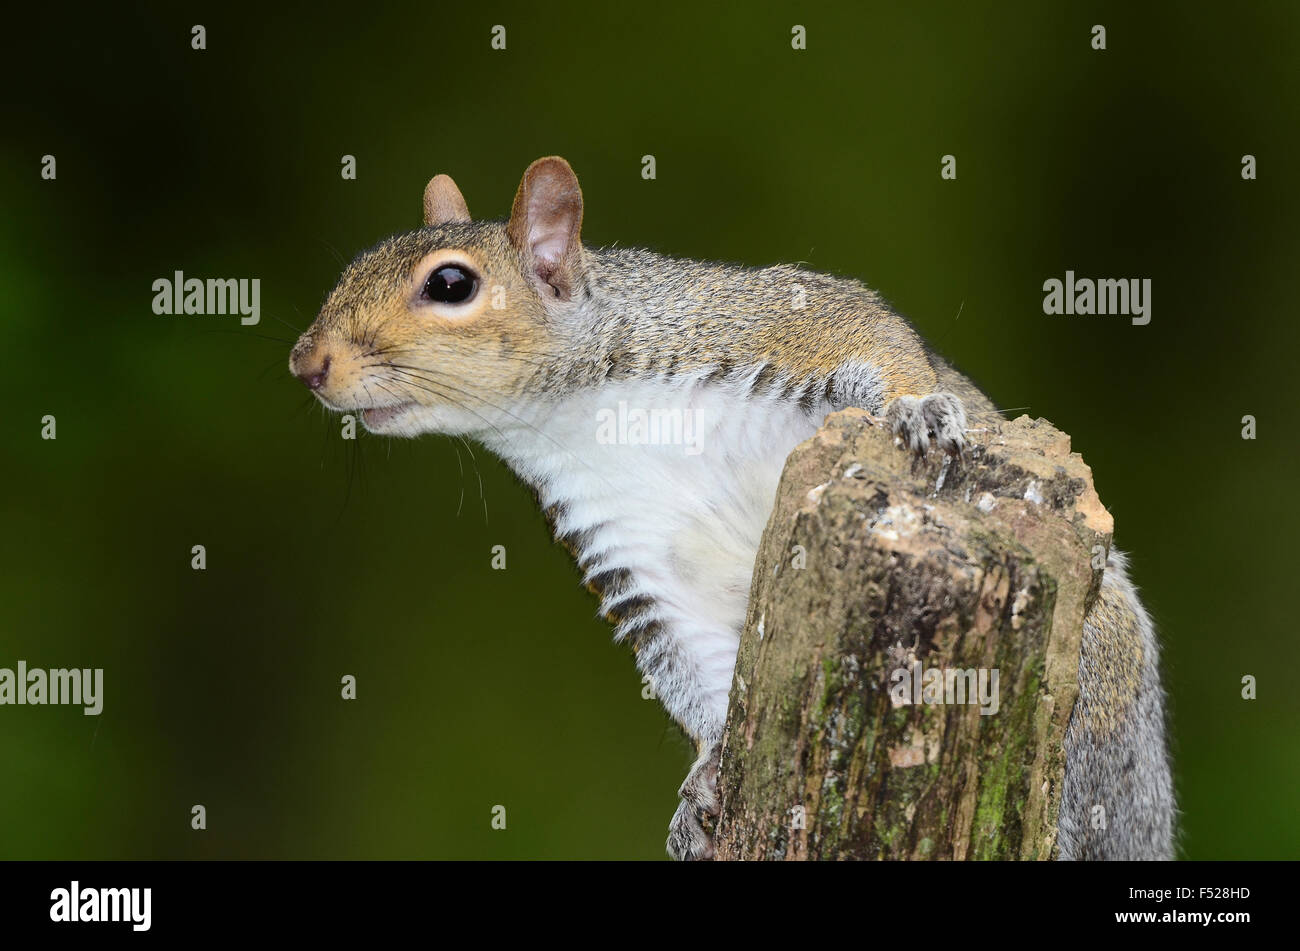 An inquisitive grey squirrel on a tree stump UK - Stock Image